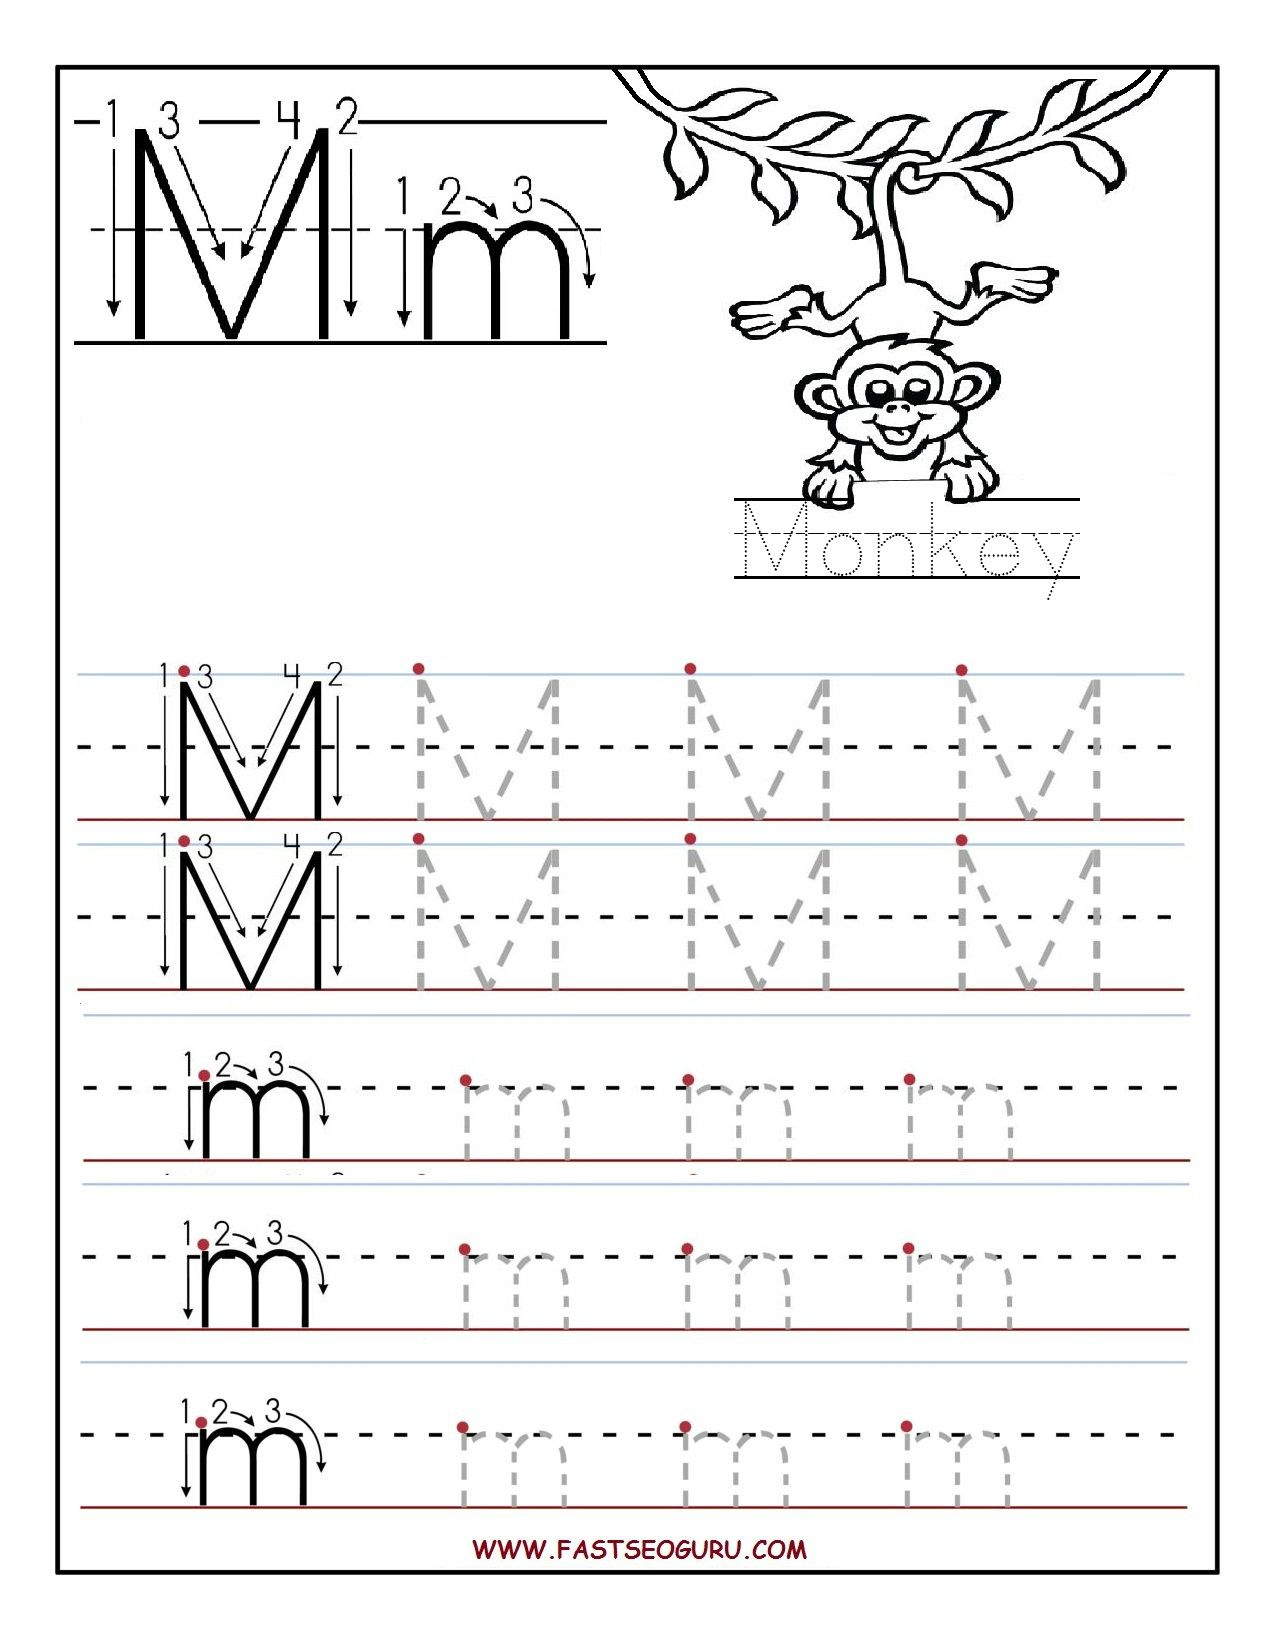 Printable Letter M Tracing Worksheets For Preschool pertaining to Letter M Worksheets For Kindergarten